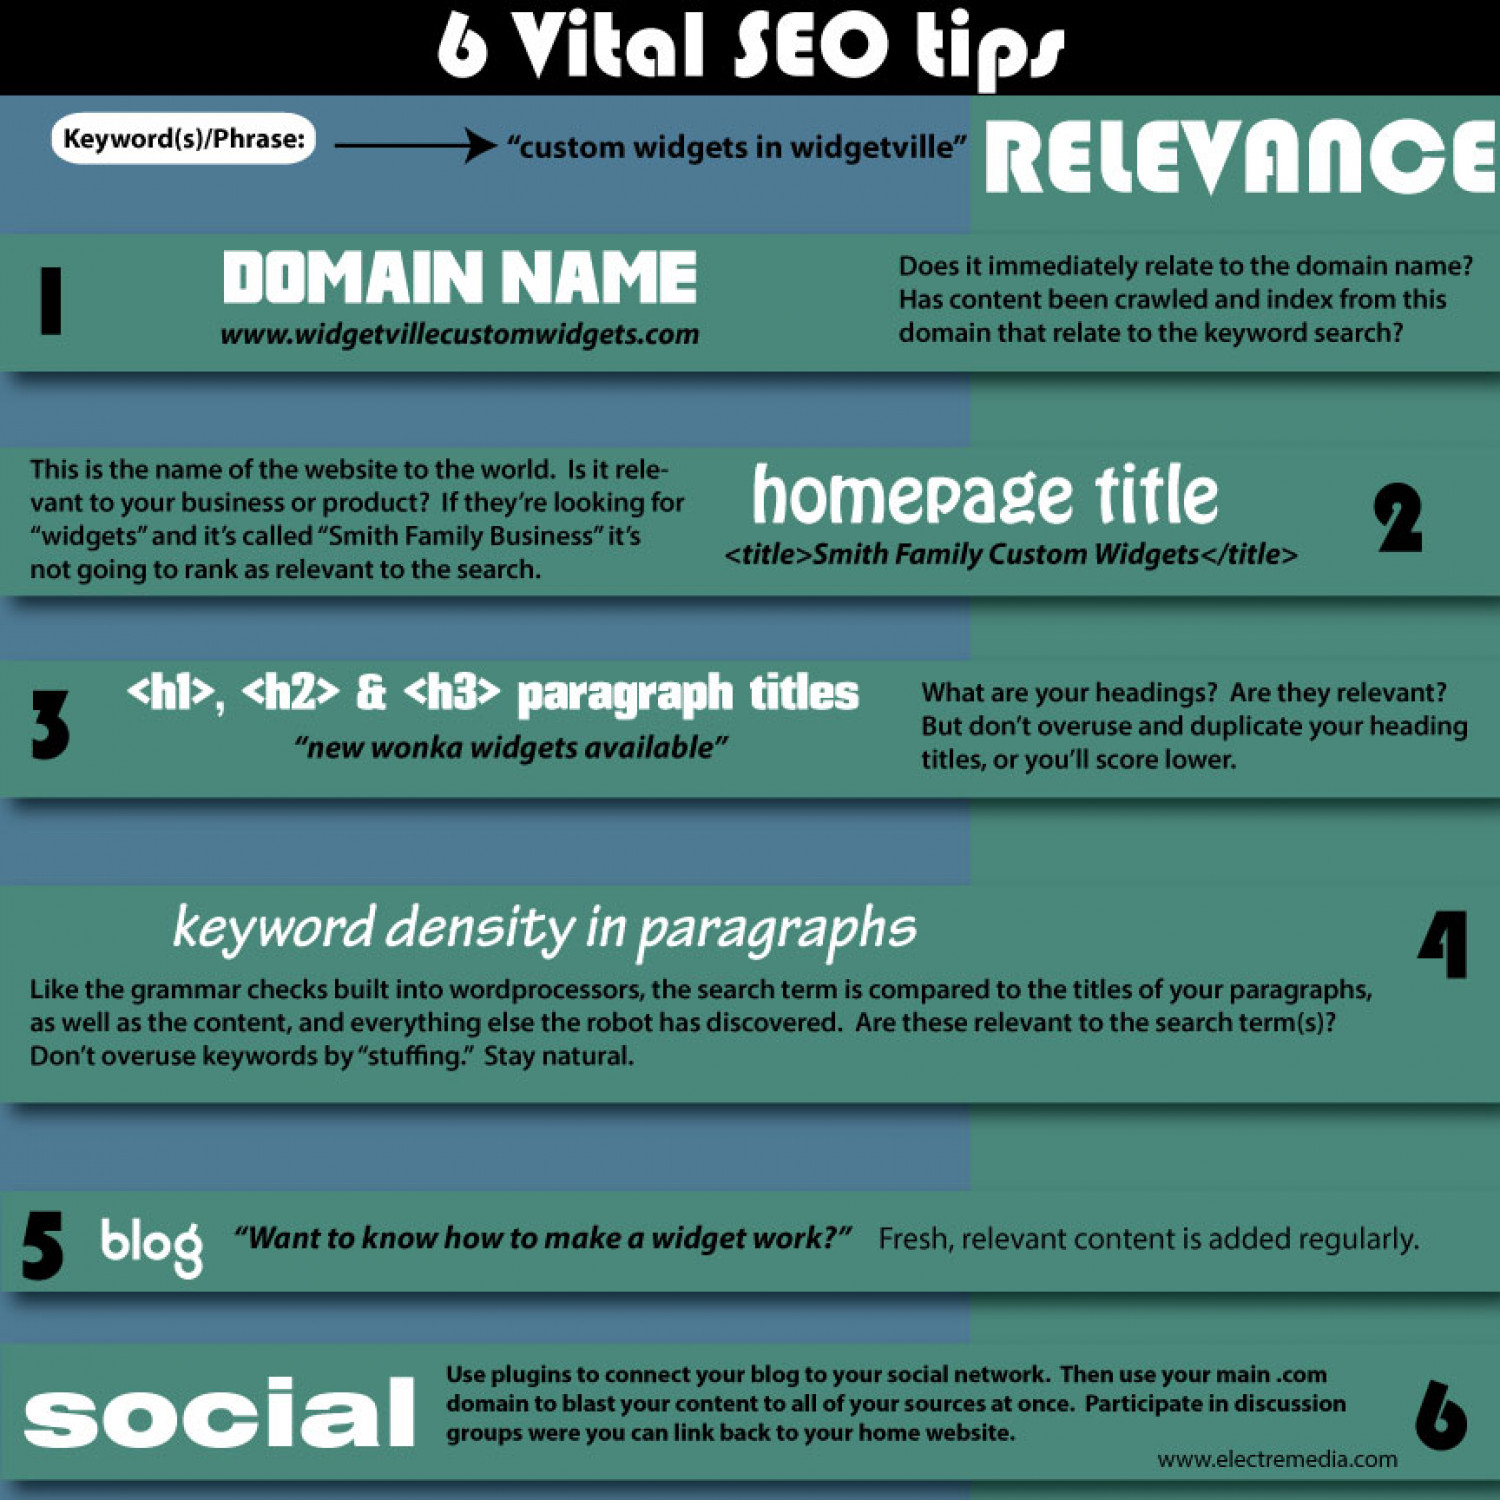 6 Vital SEO Tips Infographic